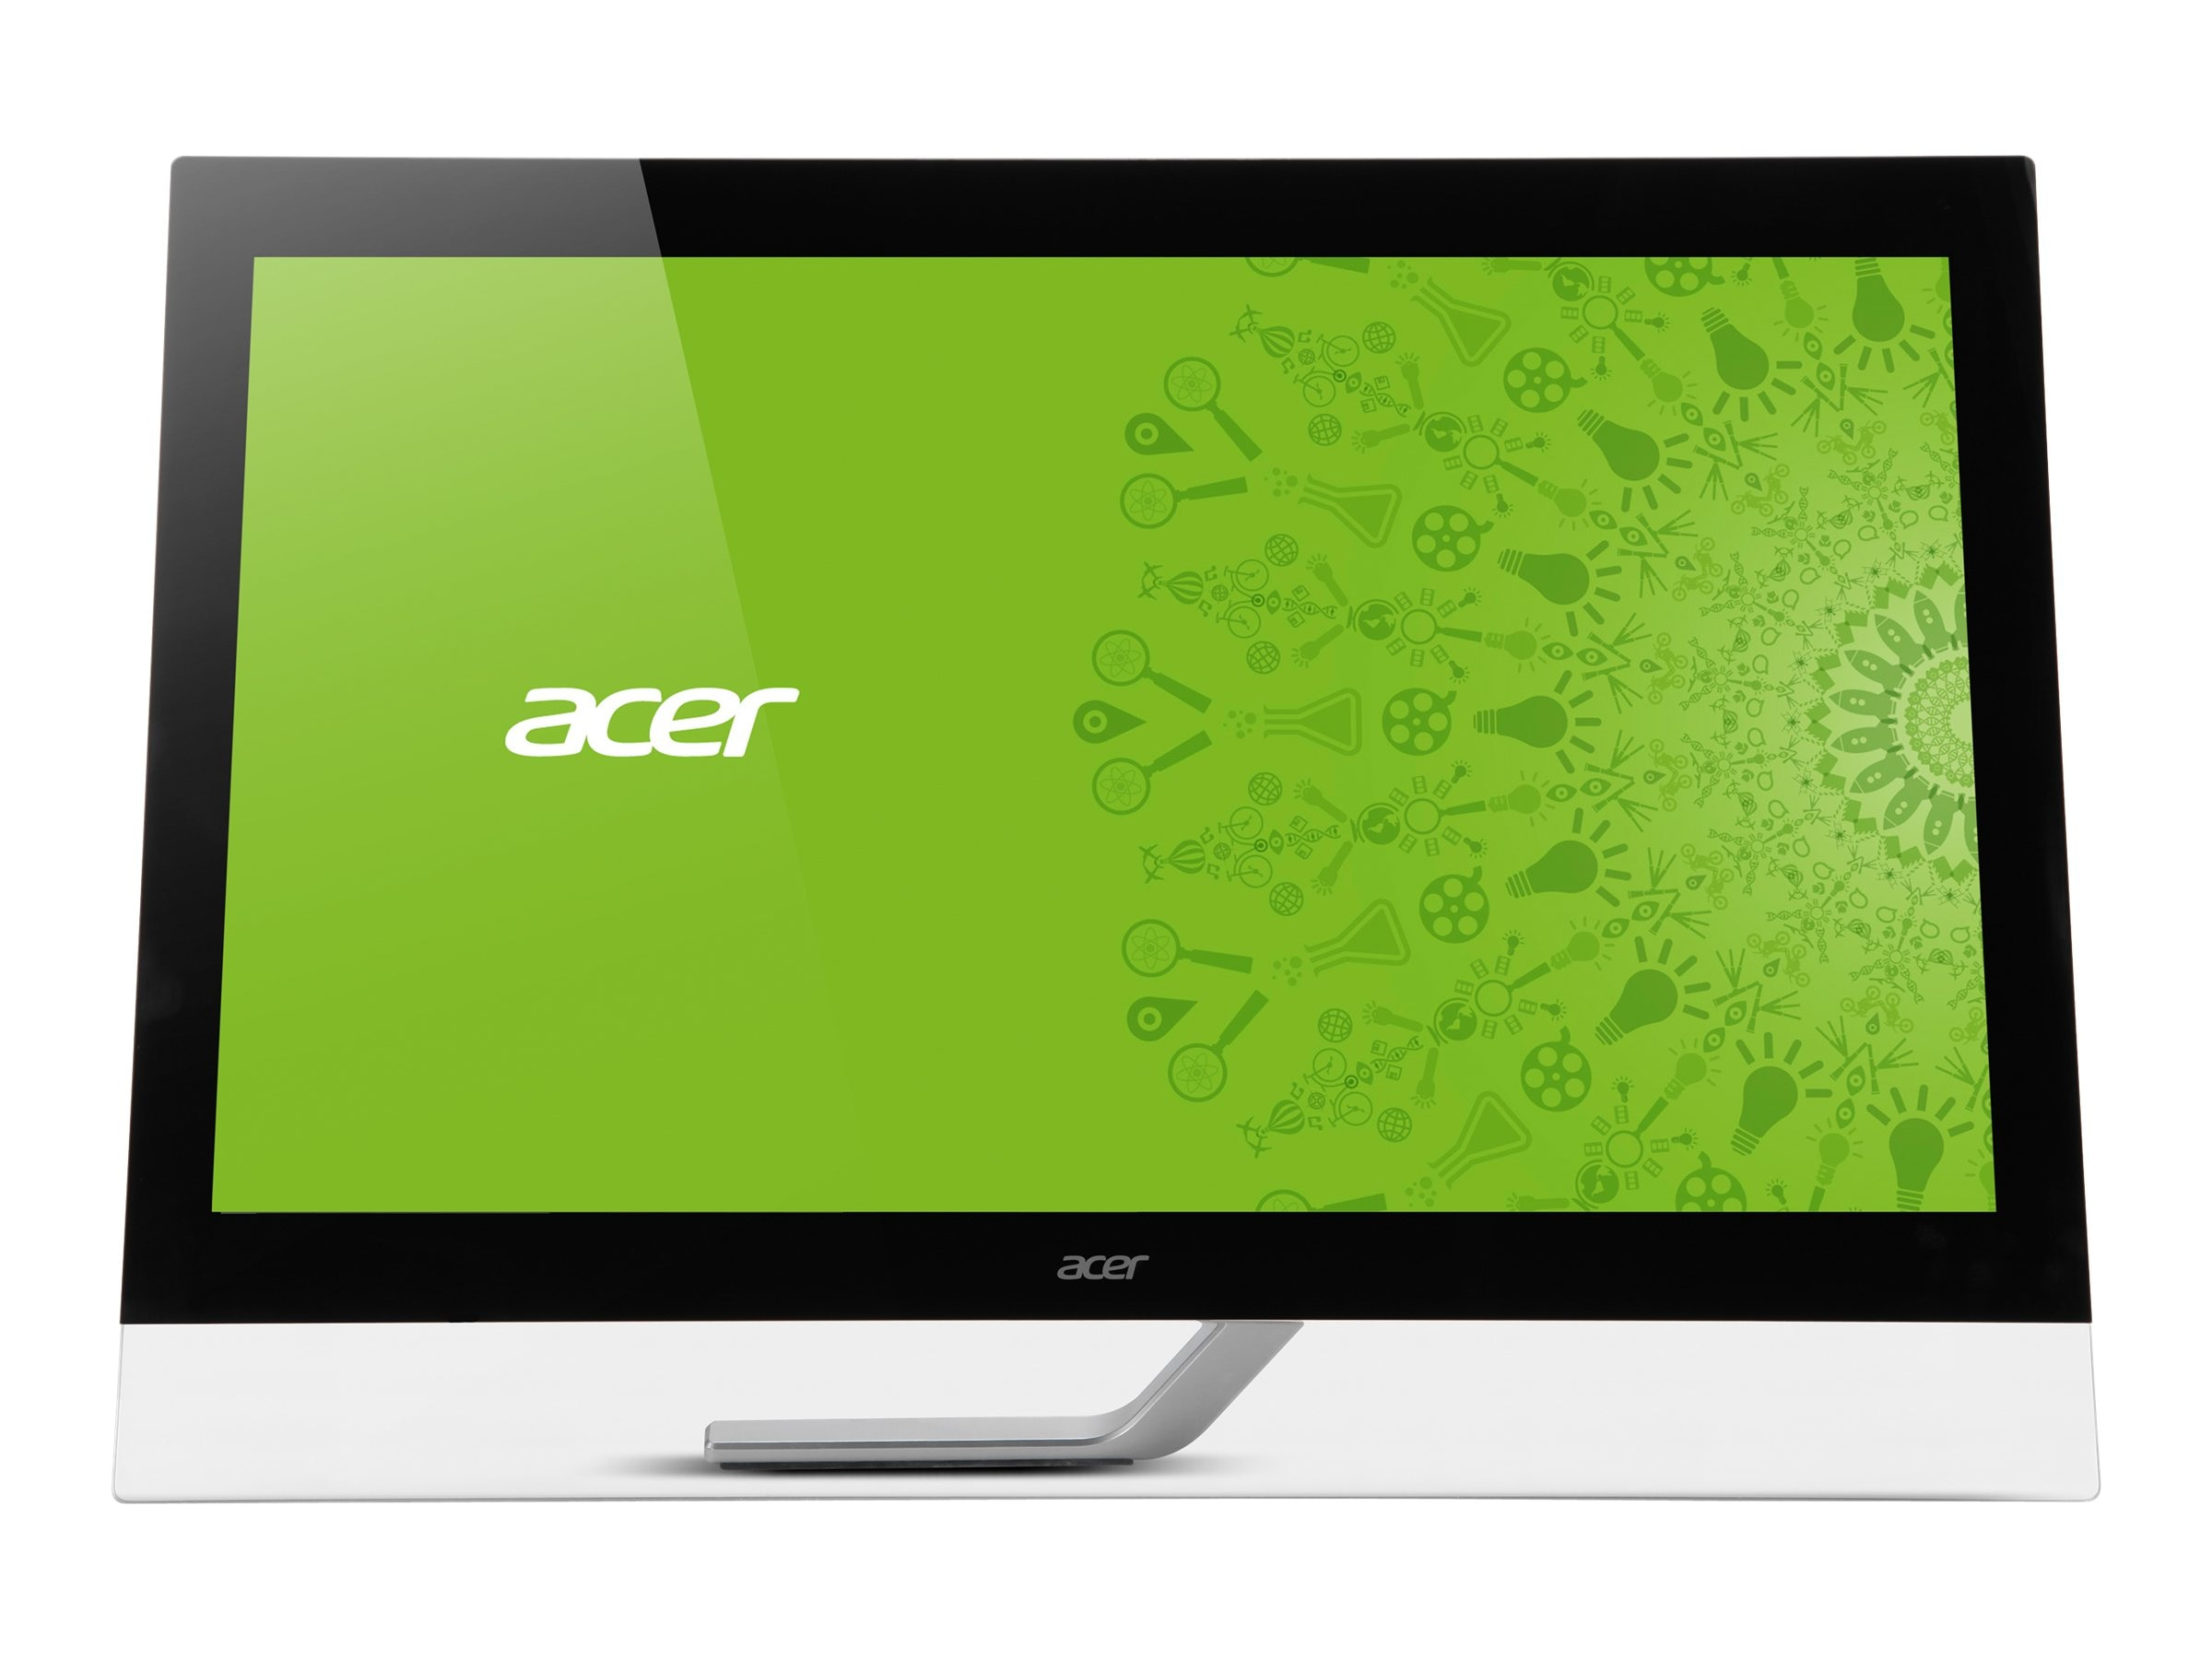 Acer 27 T272HL bmjjz Full HD Touchscreen Monitor, Black, UM.HT2AA.003, 16738368, Monitors - LED-LCD